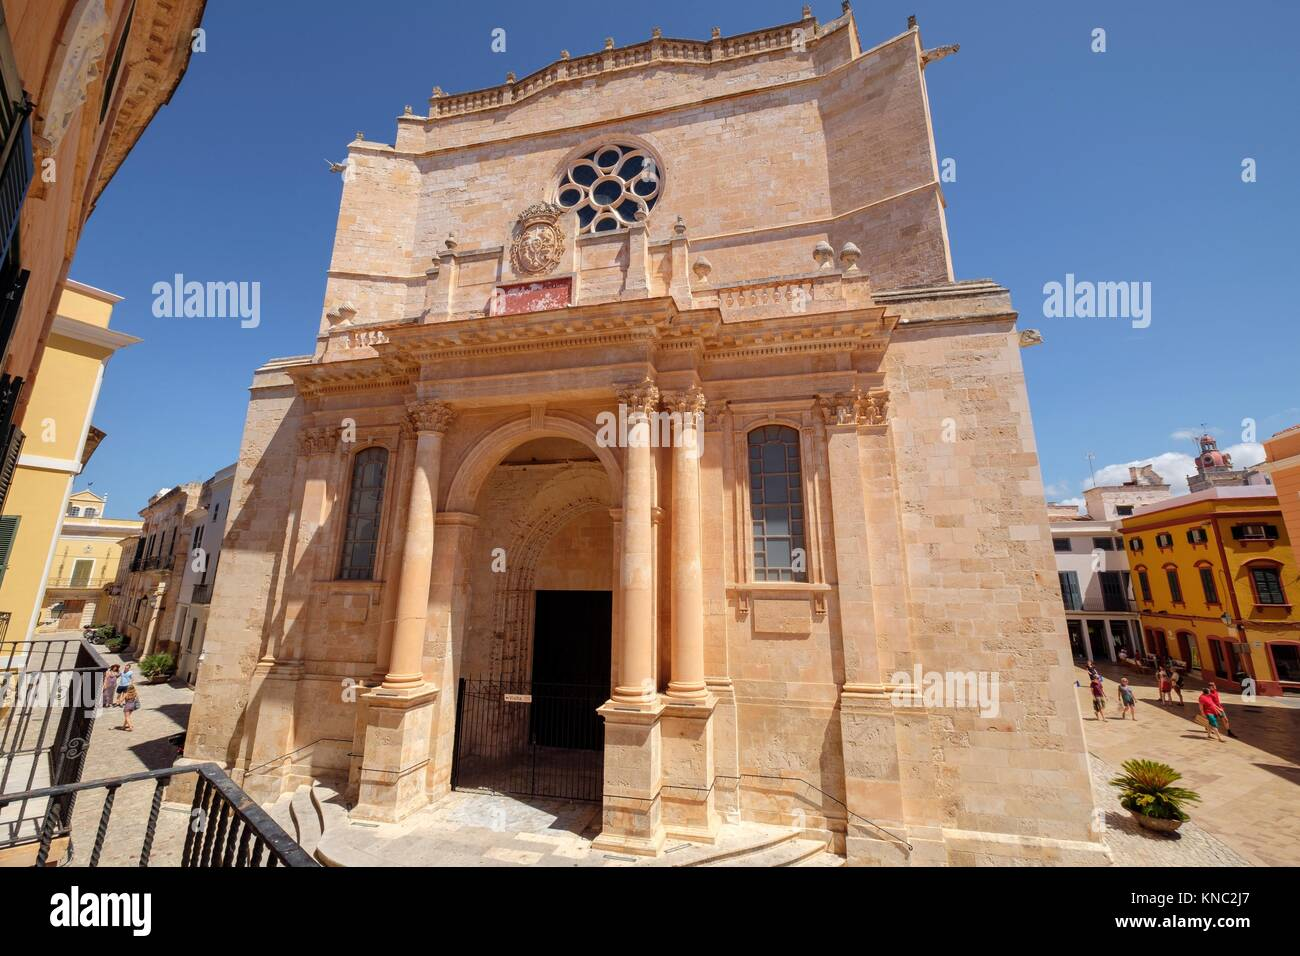 Gothic catalan architecture stock photos gothic catalan architecture stock images alamy - Casa en catalan ...